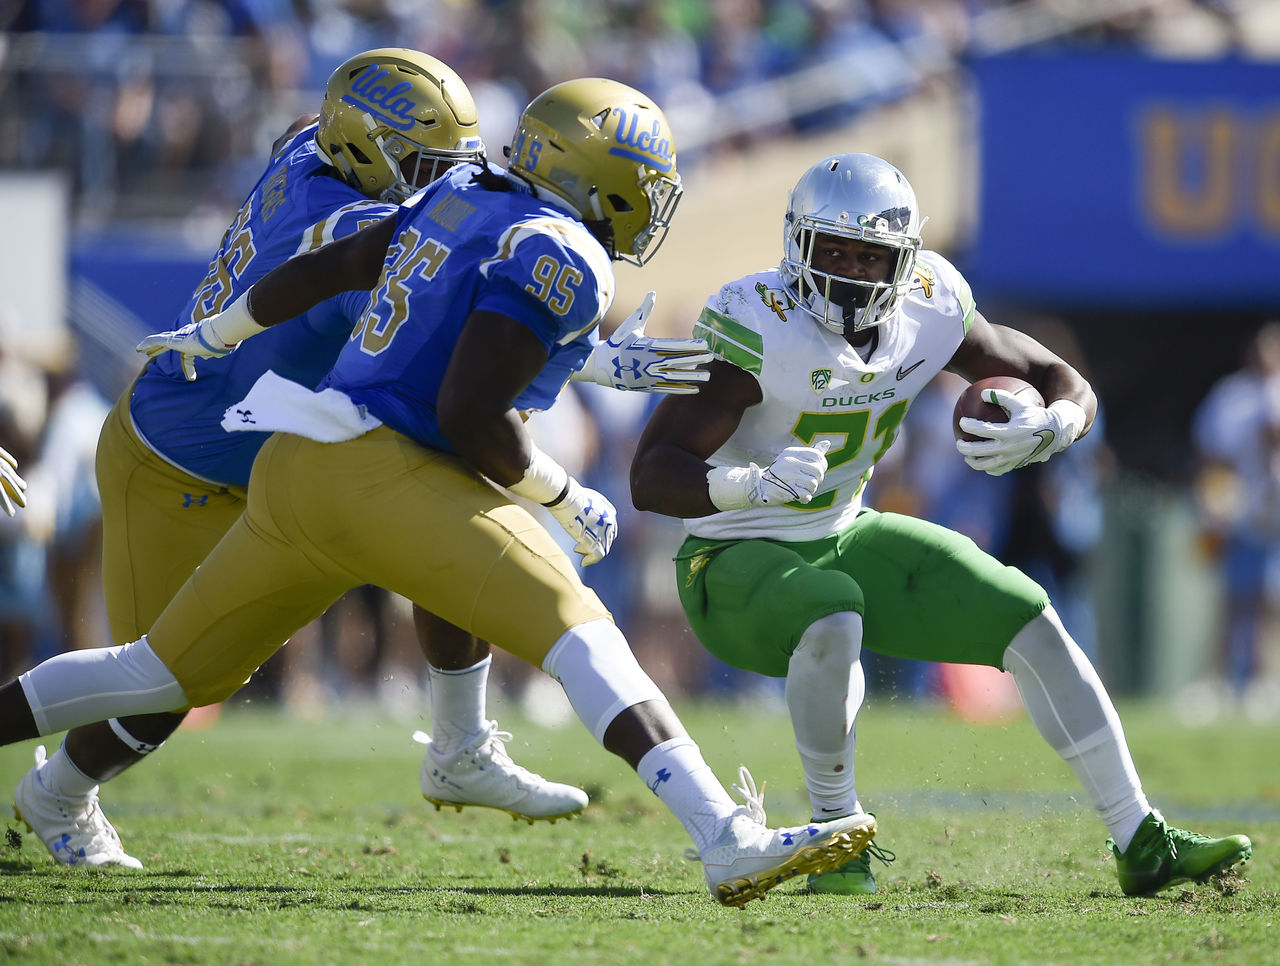 Cropped 2017 10 21t214219z 1539962565 nocid rtrmadp 3 ncaa football oregon at ucla